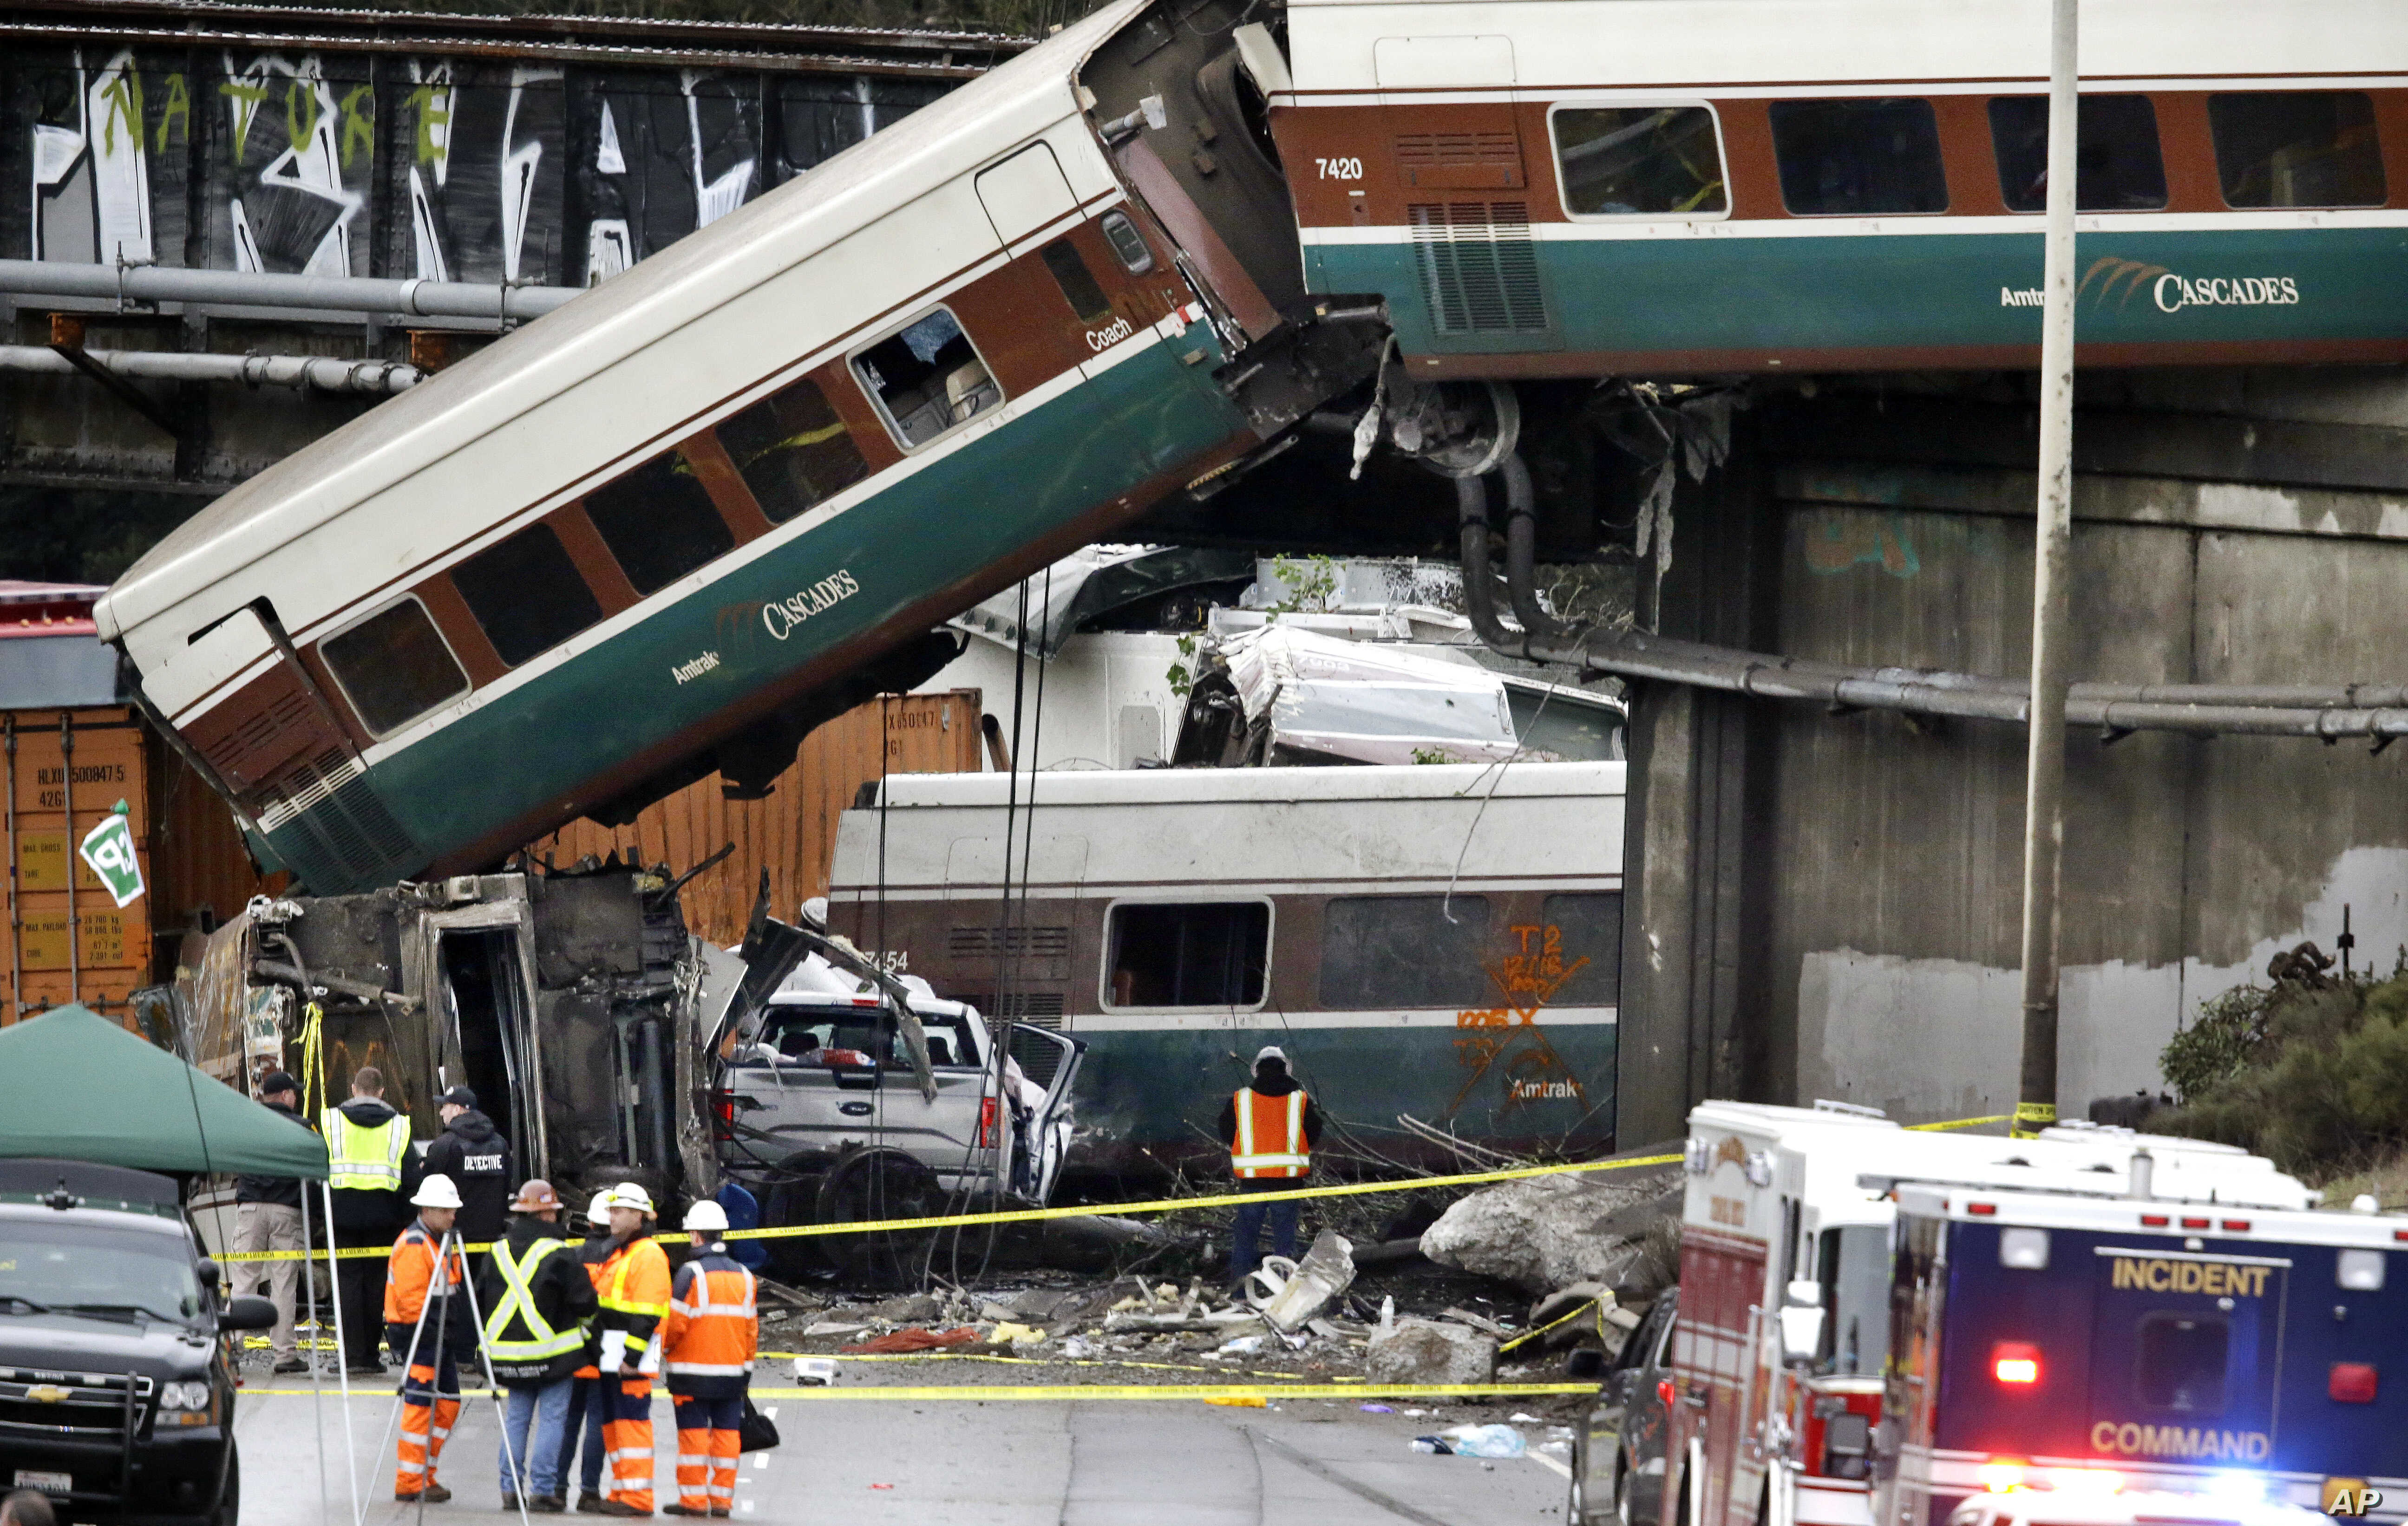 Cars from an Amtrak train lay spilled onto Interstate 5 below alongside smashed vehicles as some train cars remain on the tracks above, Dec. 18, 2017, in DuPont, Wash.